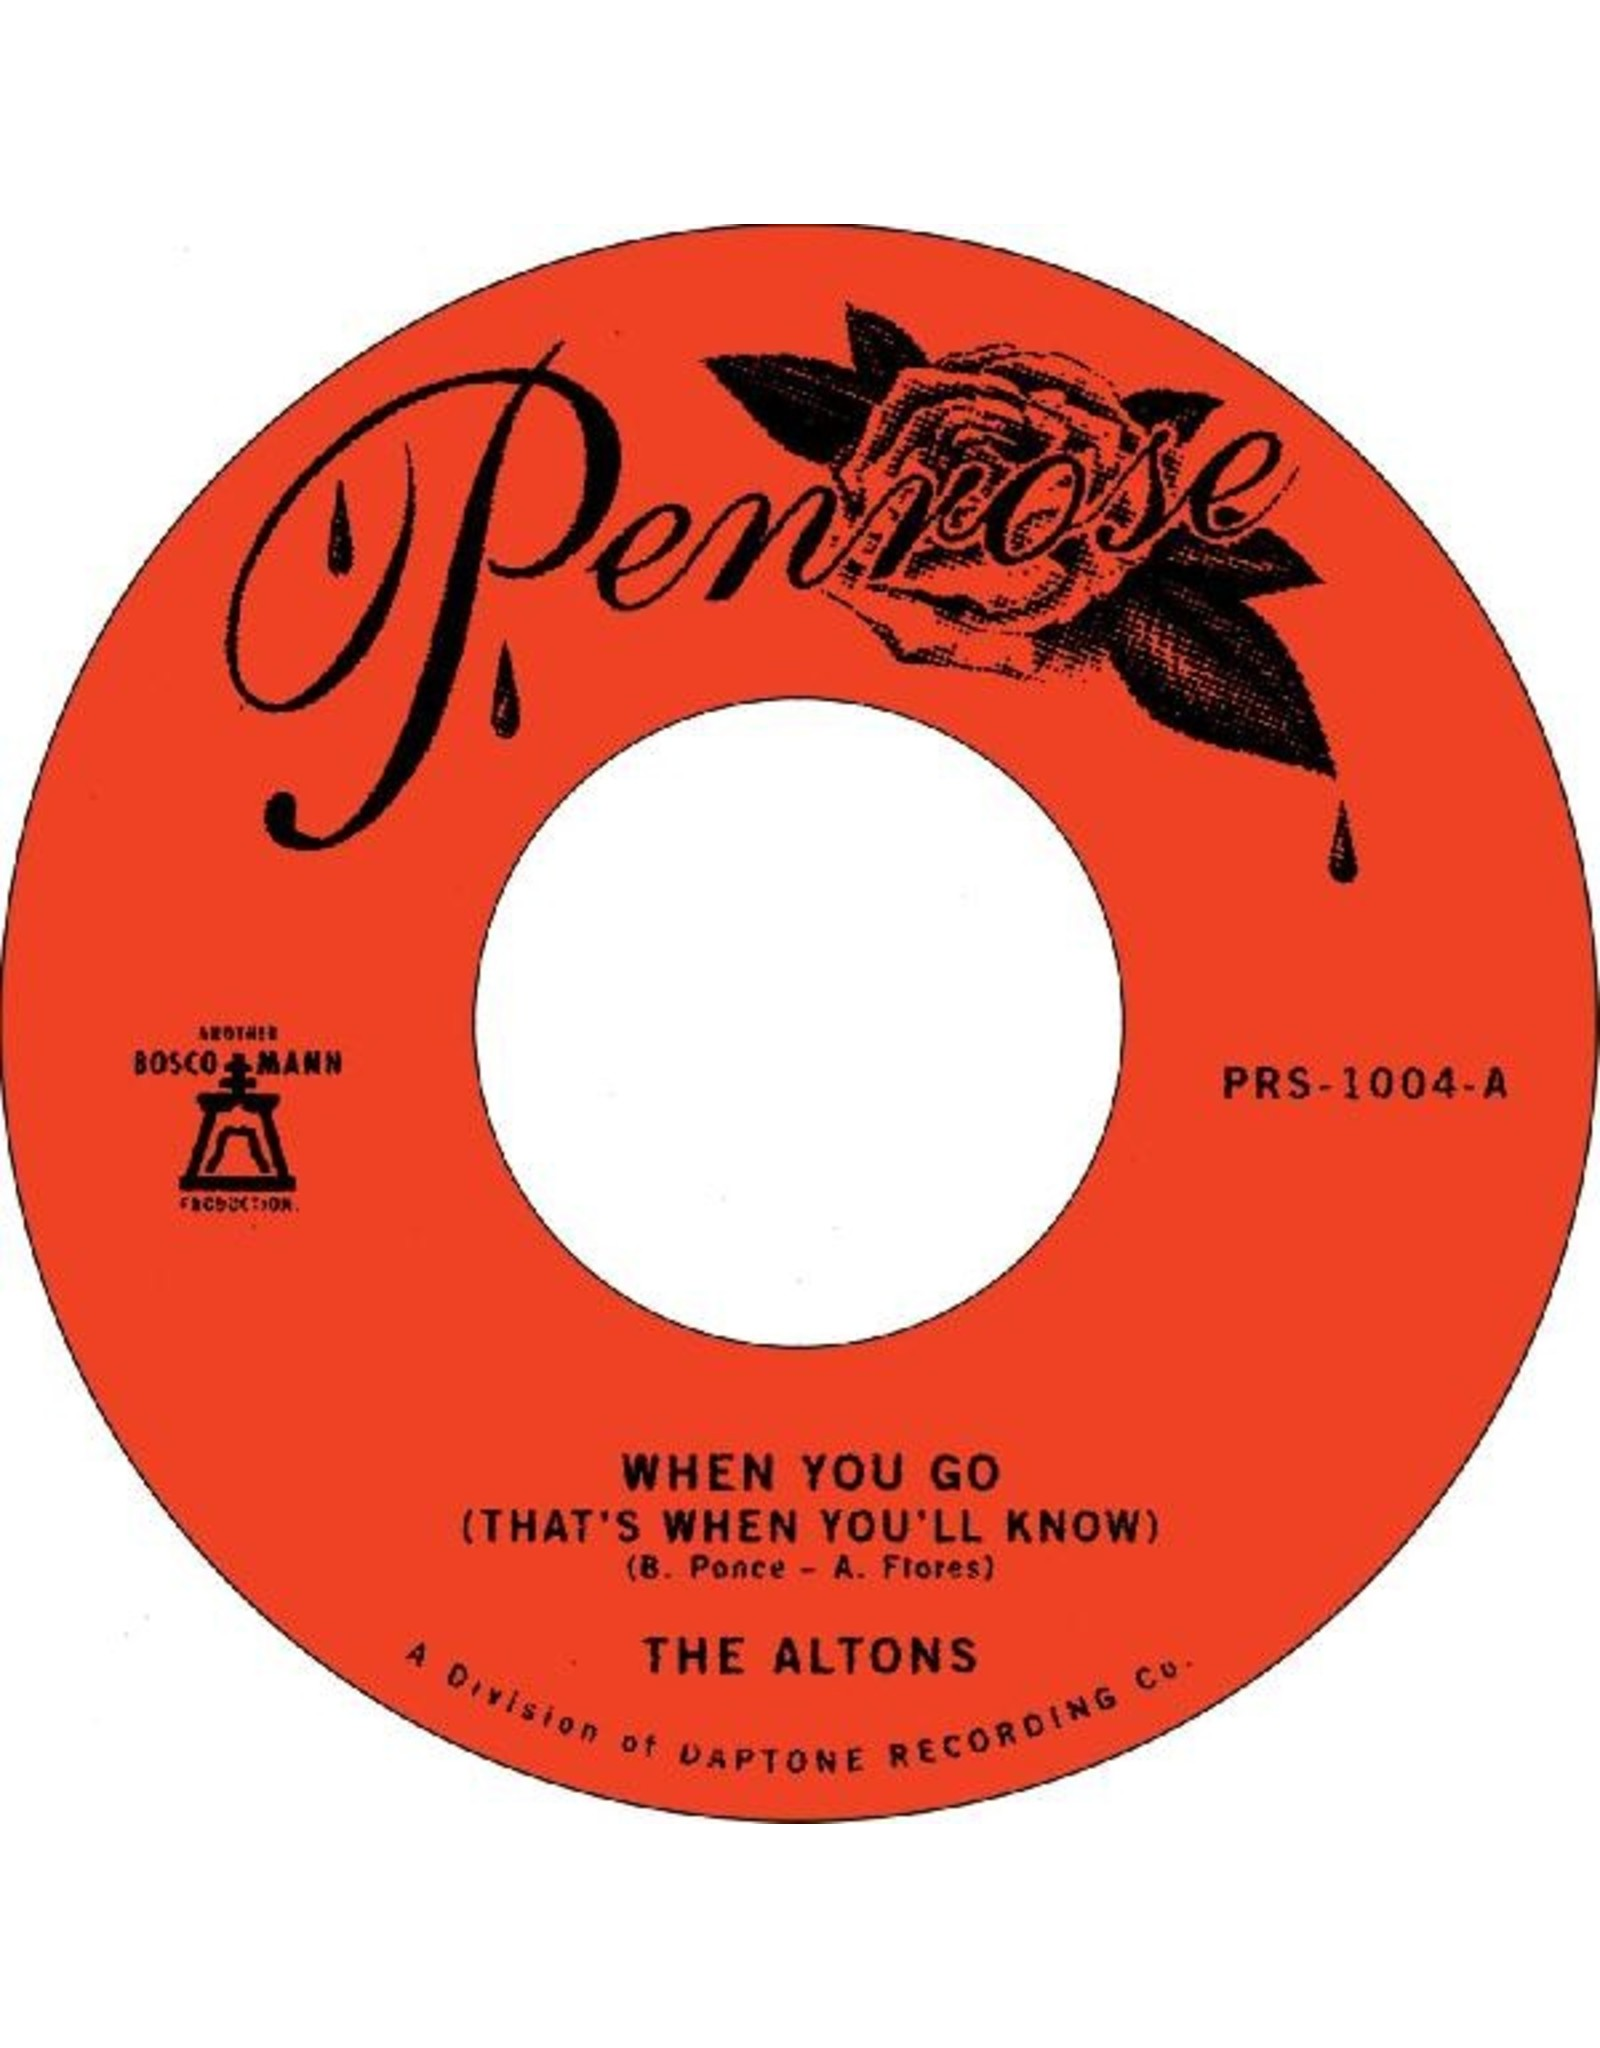 """New Vinyl The Altons - When You Go b/w Over & Over 7"""""""